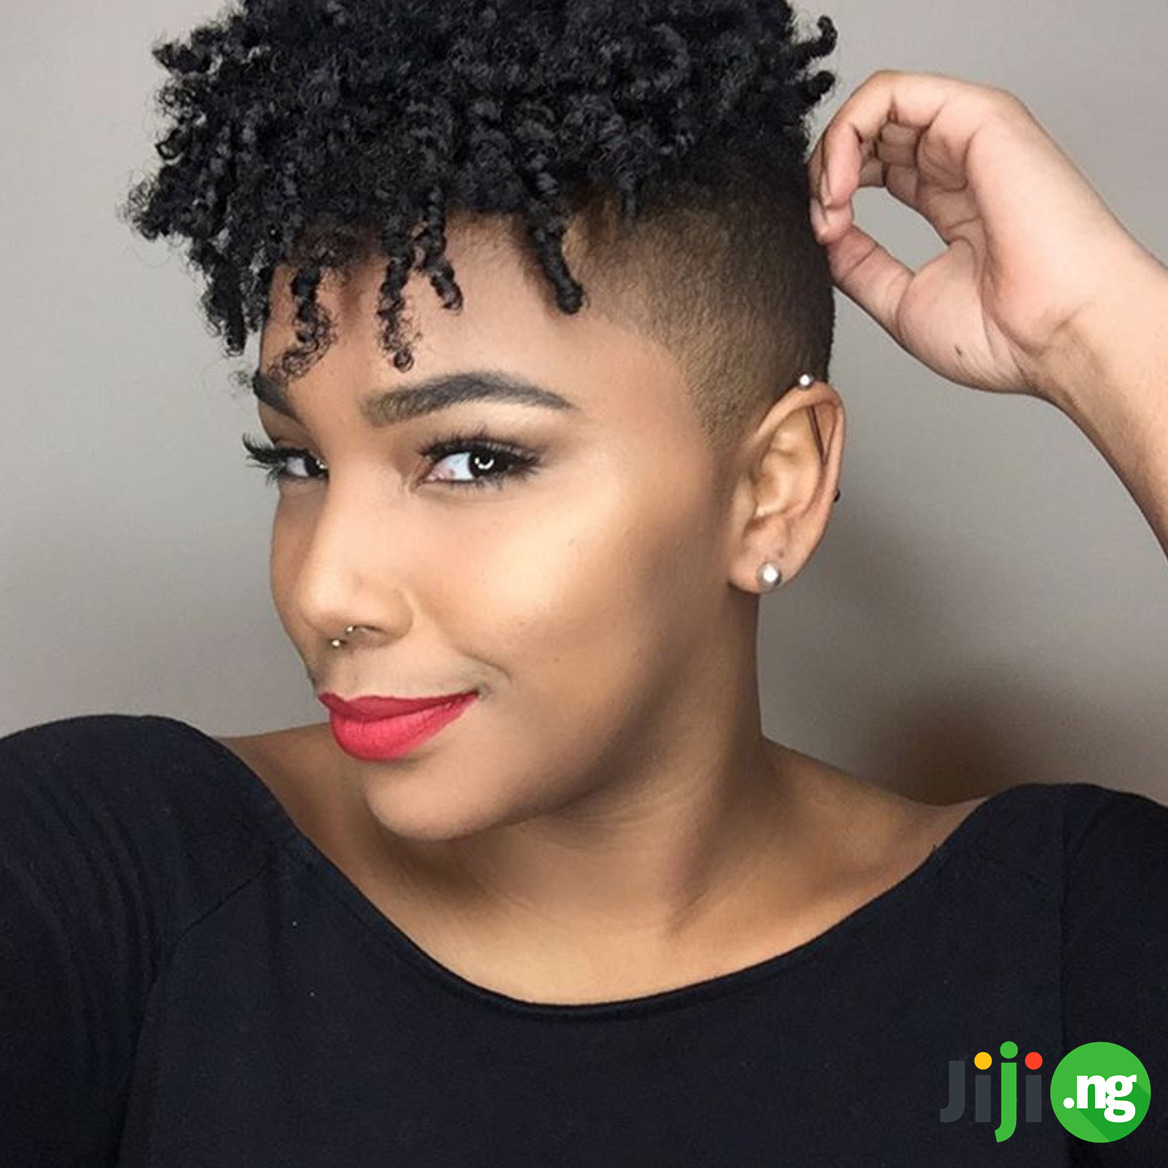 25 Easy Natural Hairstyles For Short Hair Jiji Blog